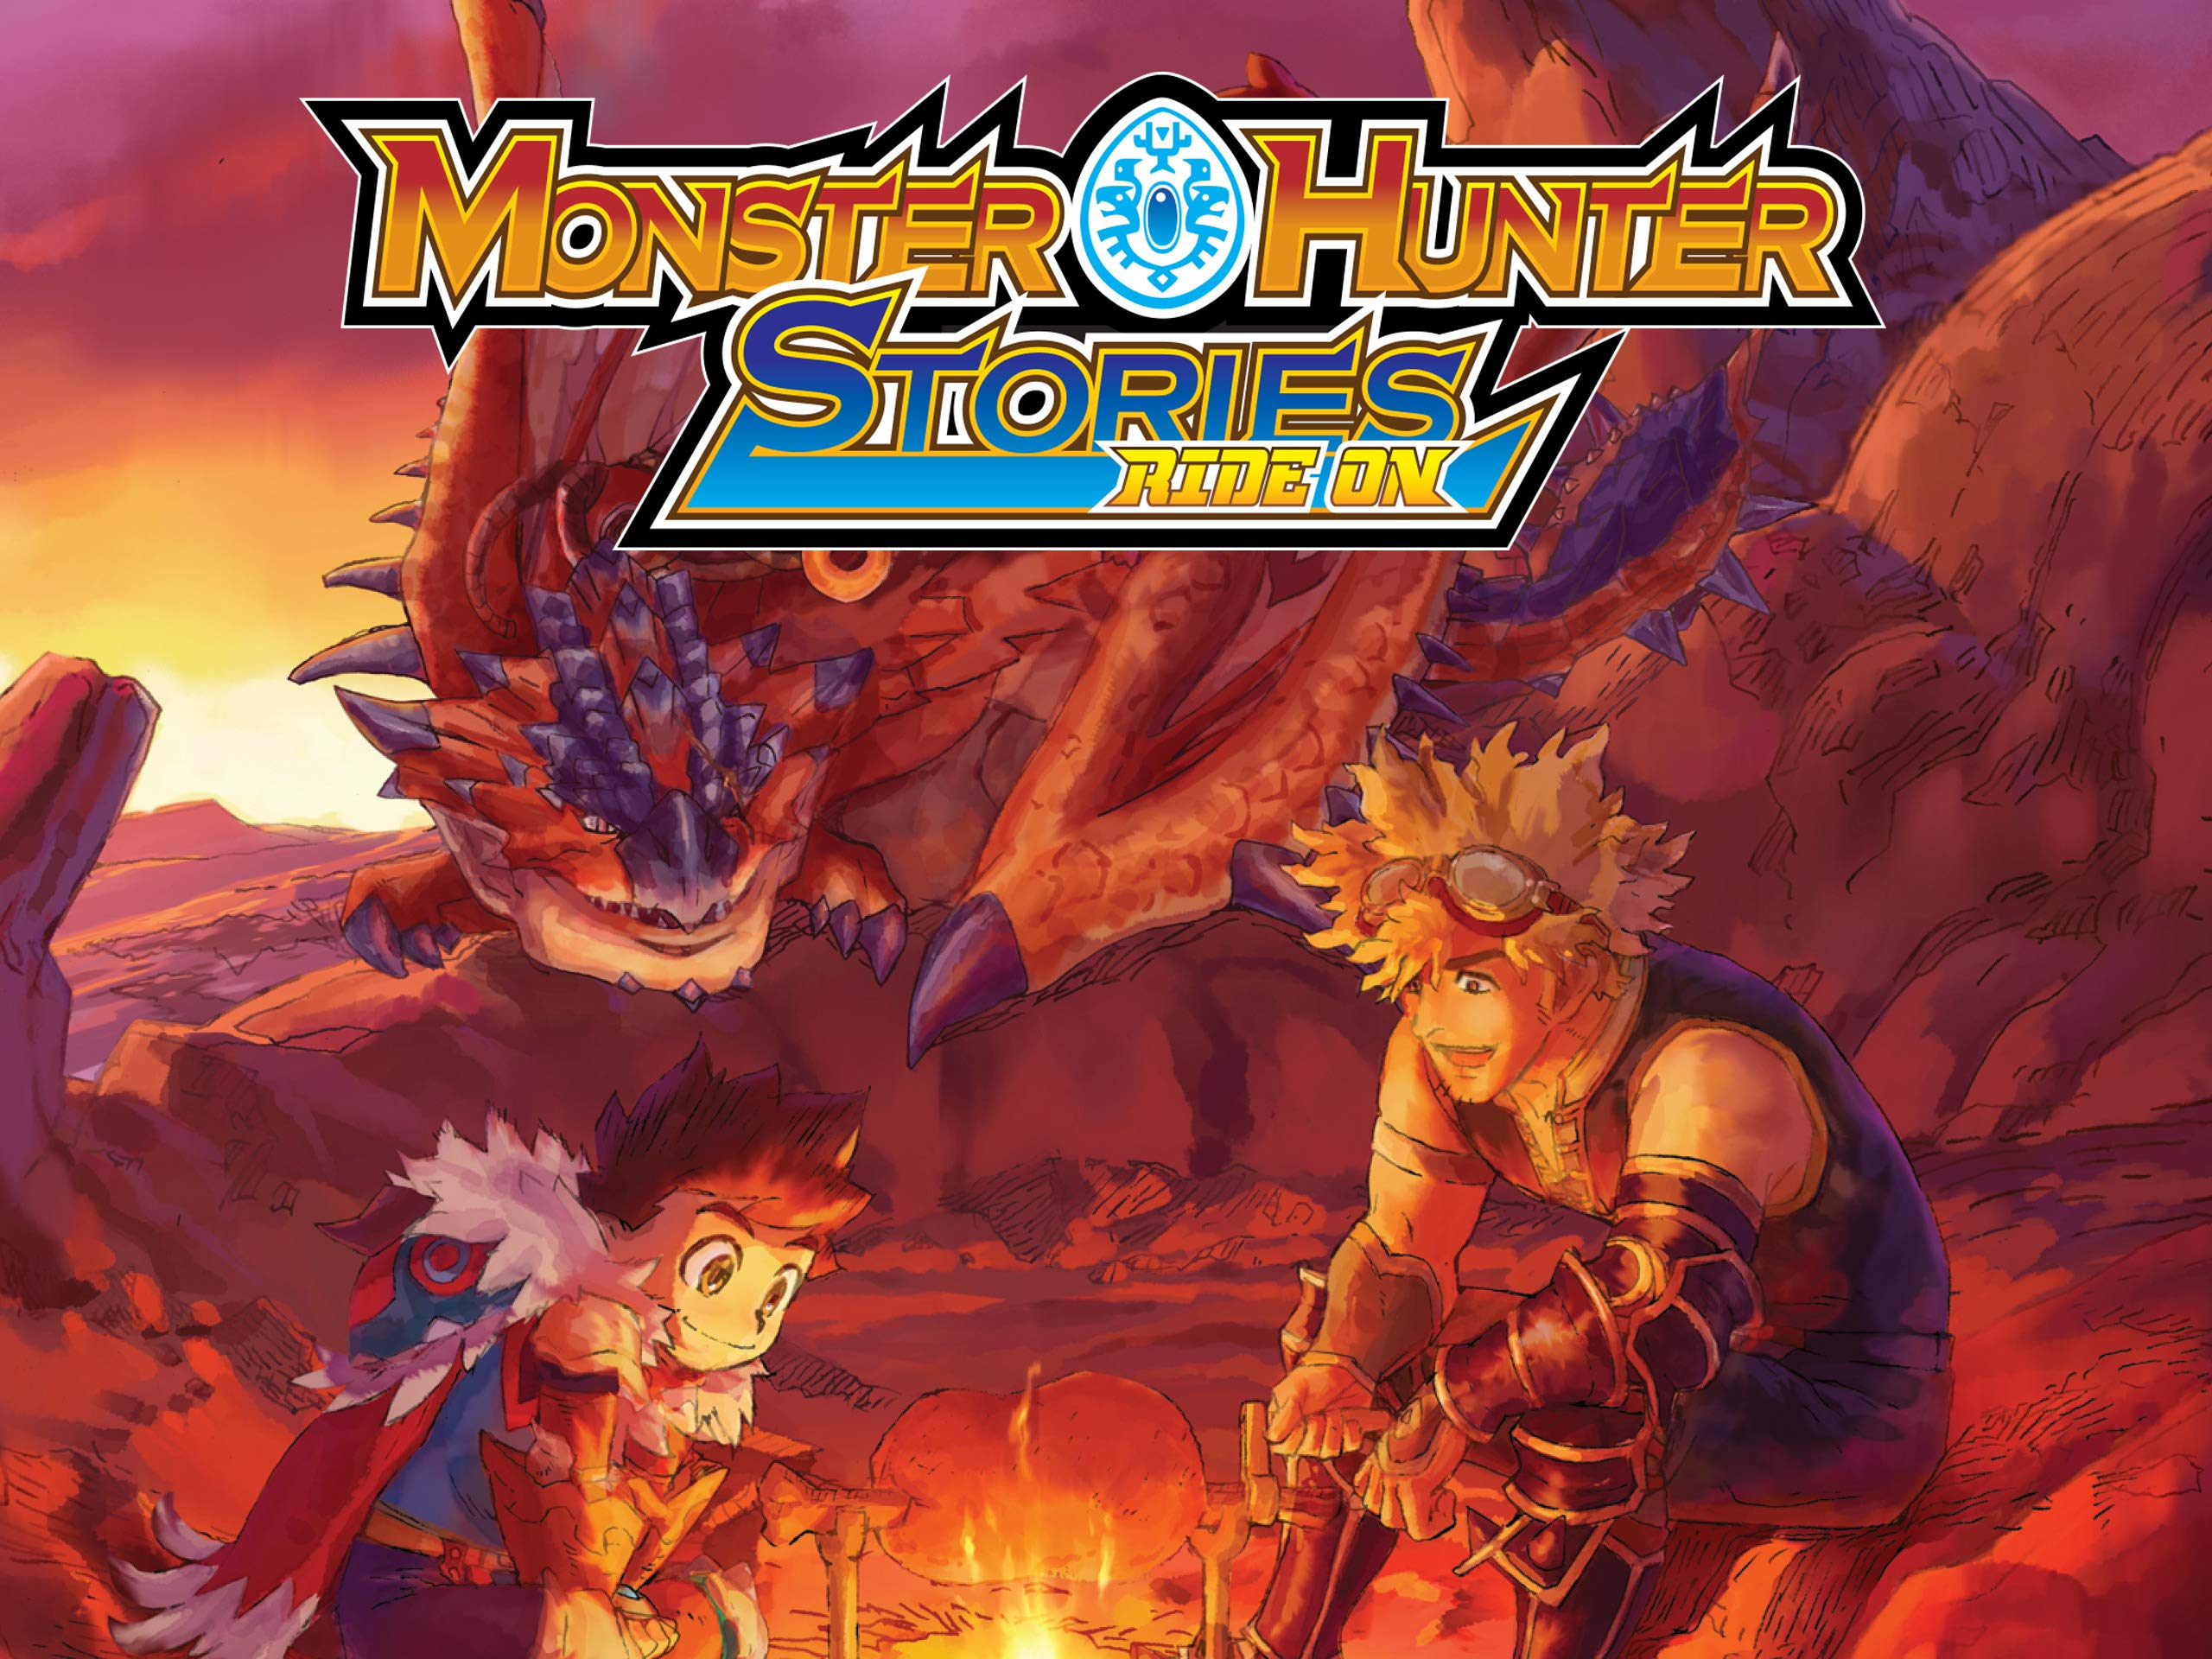 Watch Monster Hunter Stories Ride On Prime Video